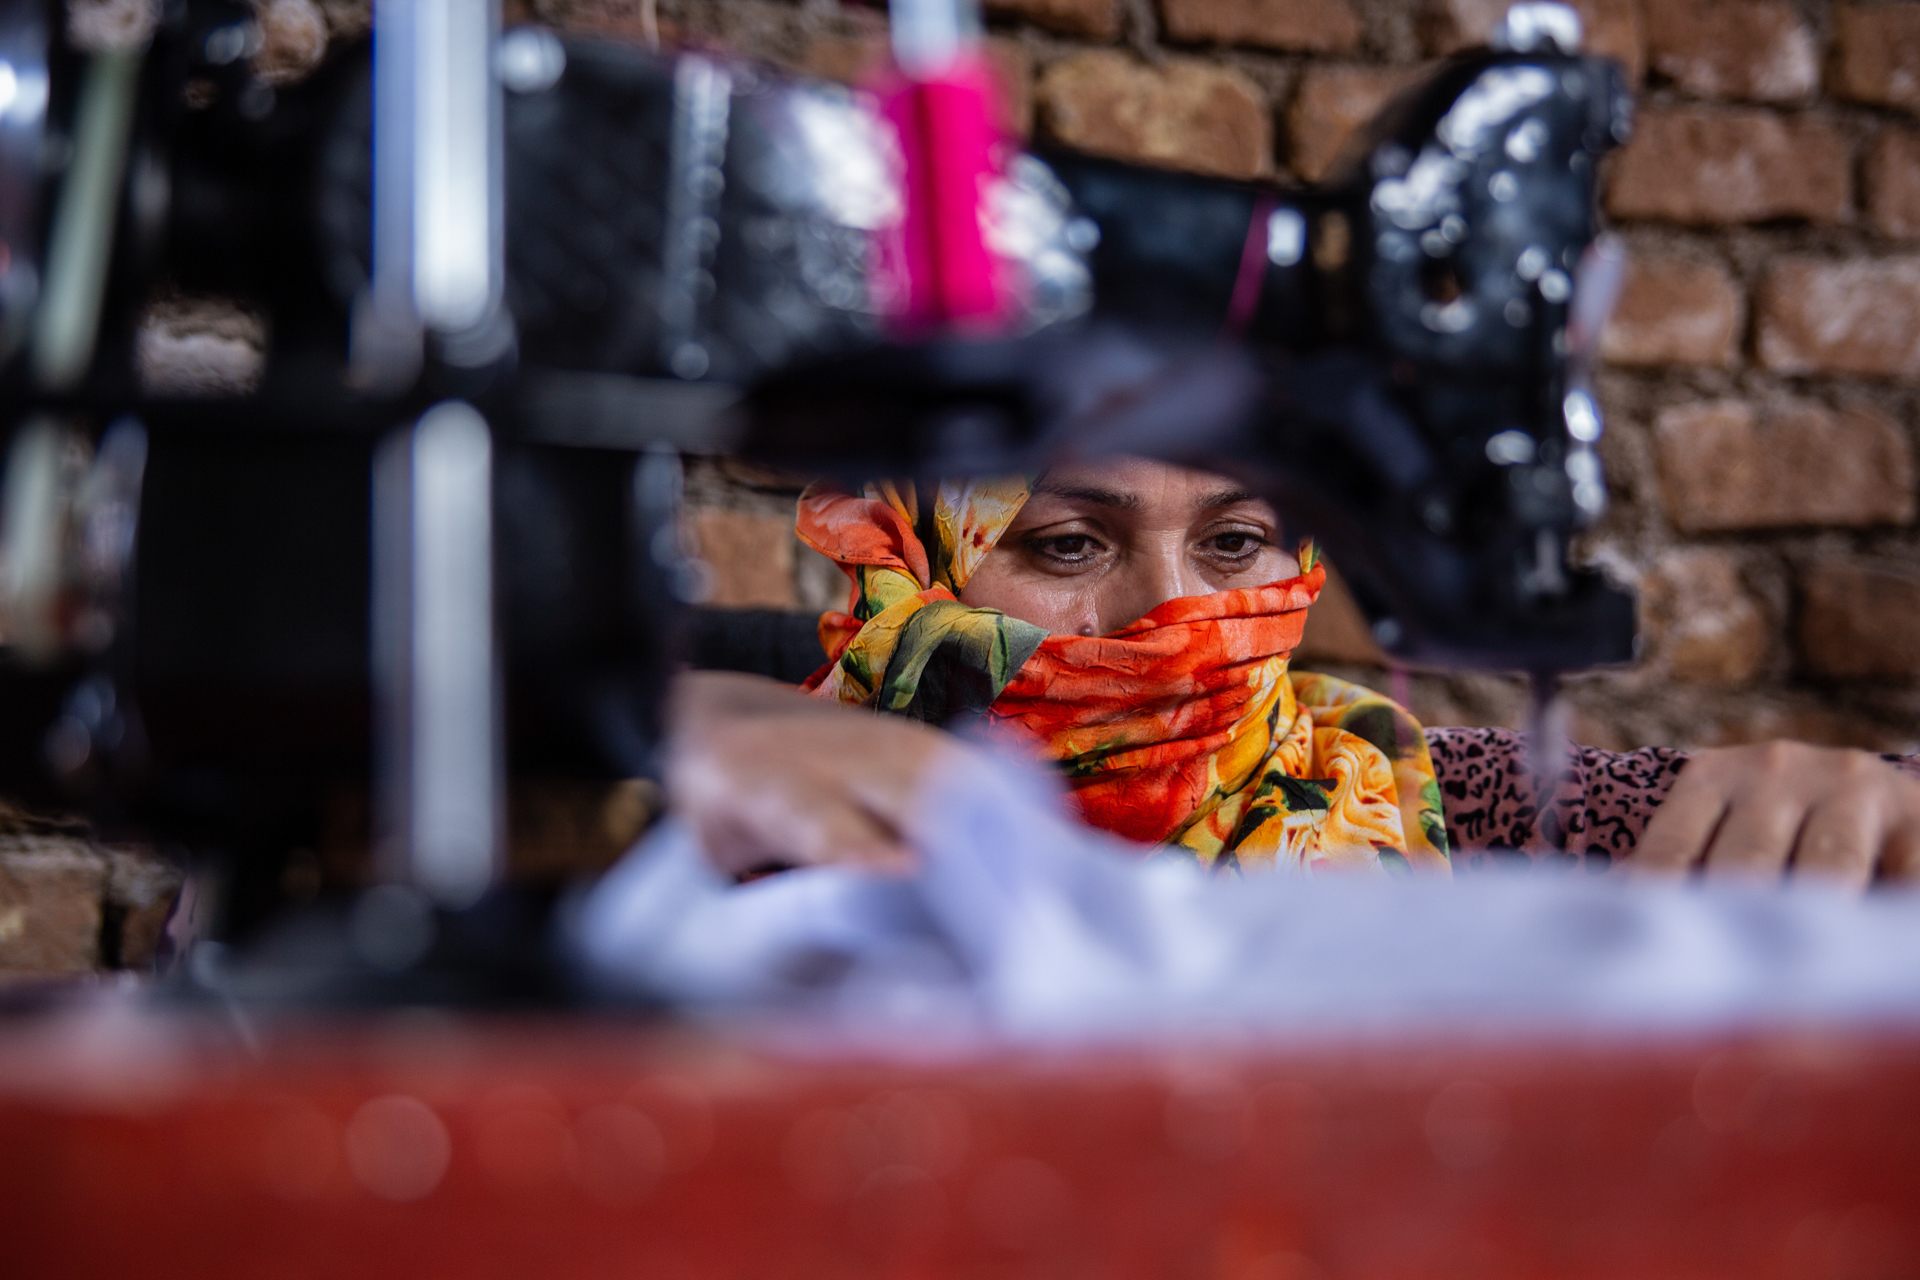 A woman in Afghanistan sits behind a sewing machine